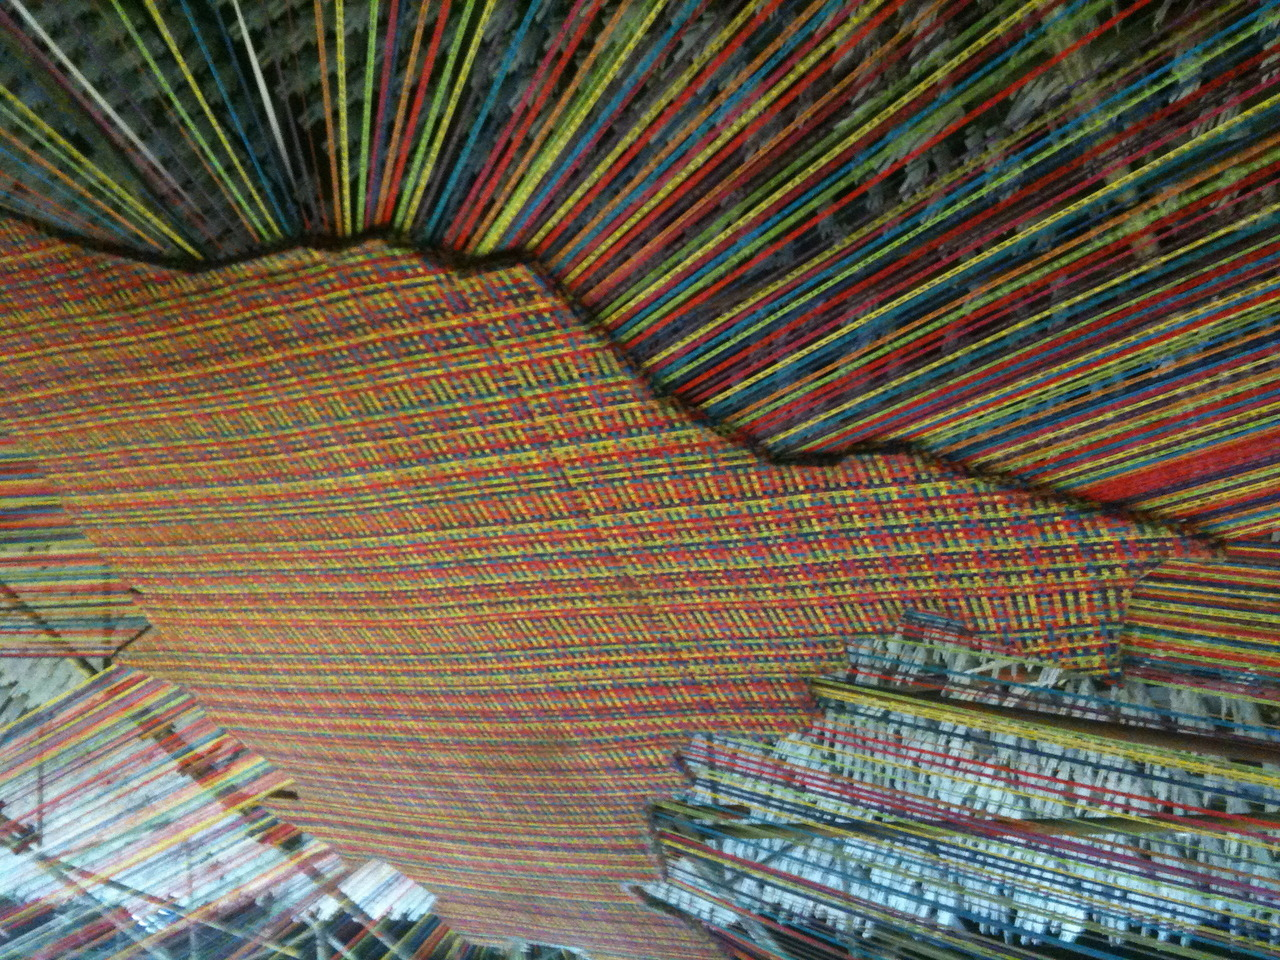 image of brazil made of woven fitinhas do senhor do bomfim (wish ribbons) from bahia. another impressive installation at the humanidade exhibit during the Rio+20 conference. (photo by J)